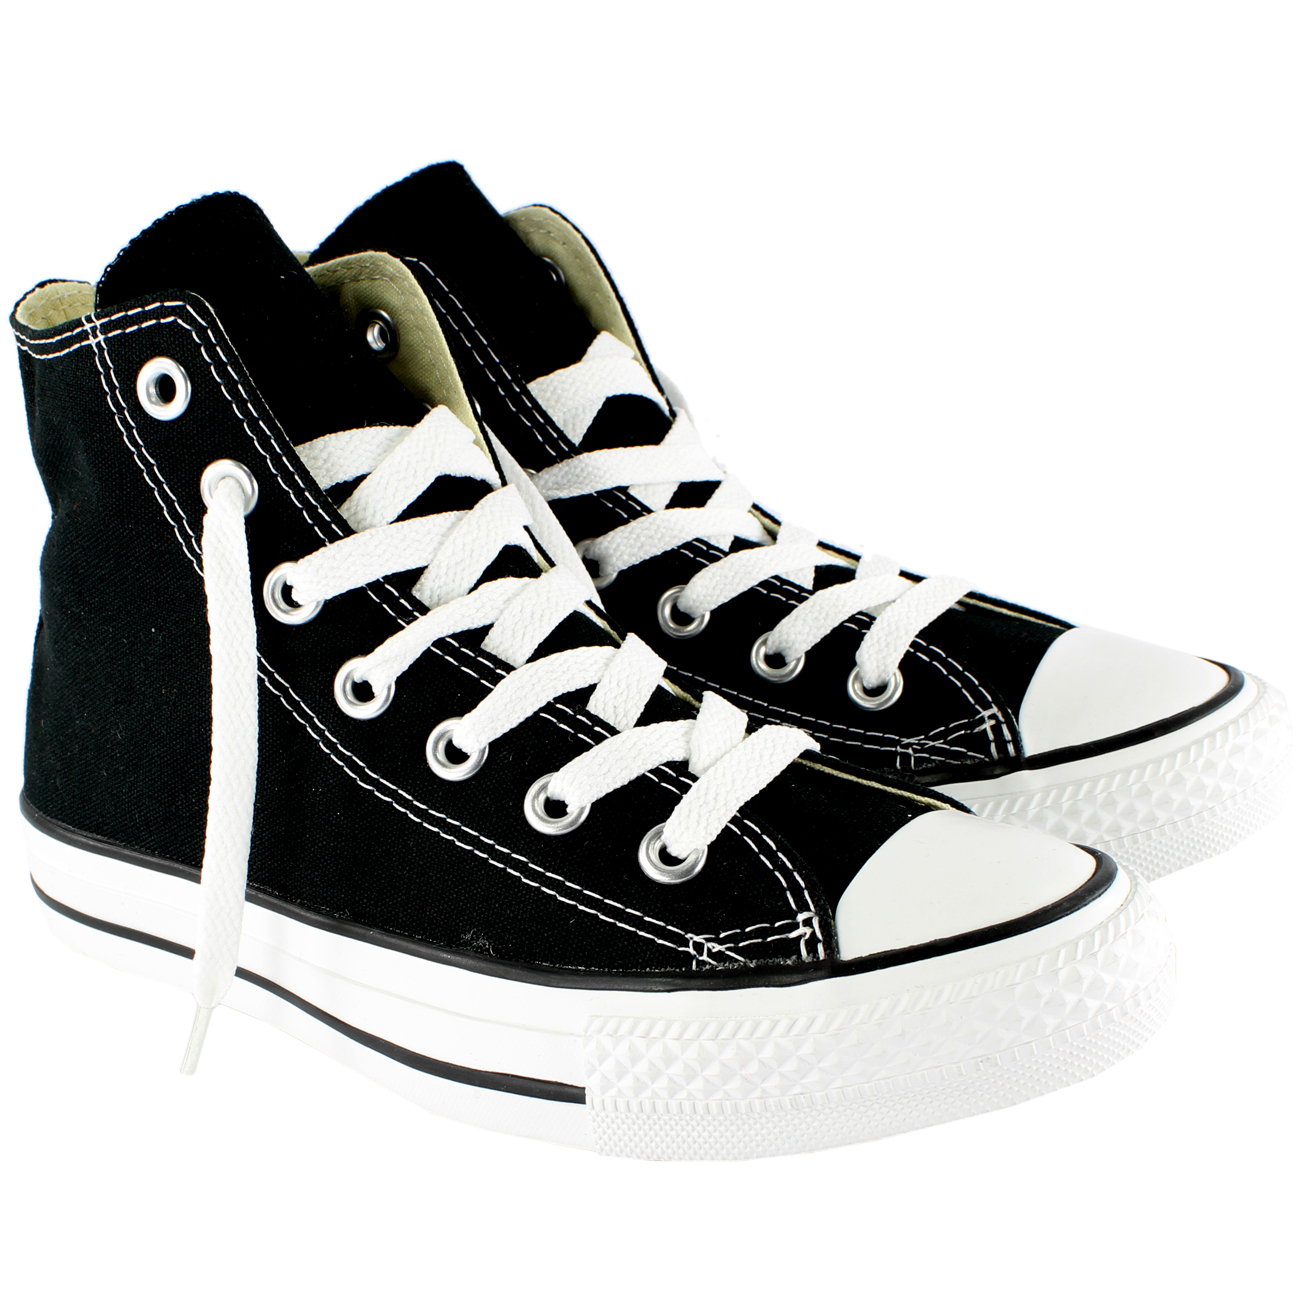 9aeca567d936 Womens Converse All Star Hi High Top Chuck Taylor Chucks Trainers UK ...